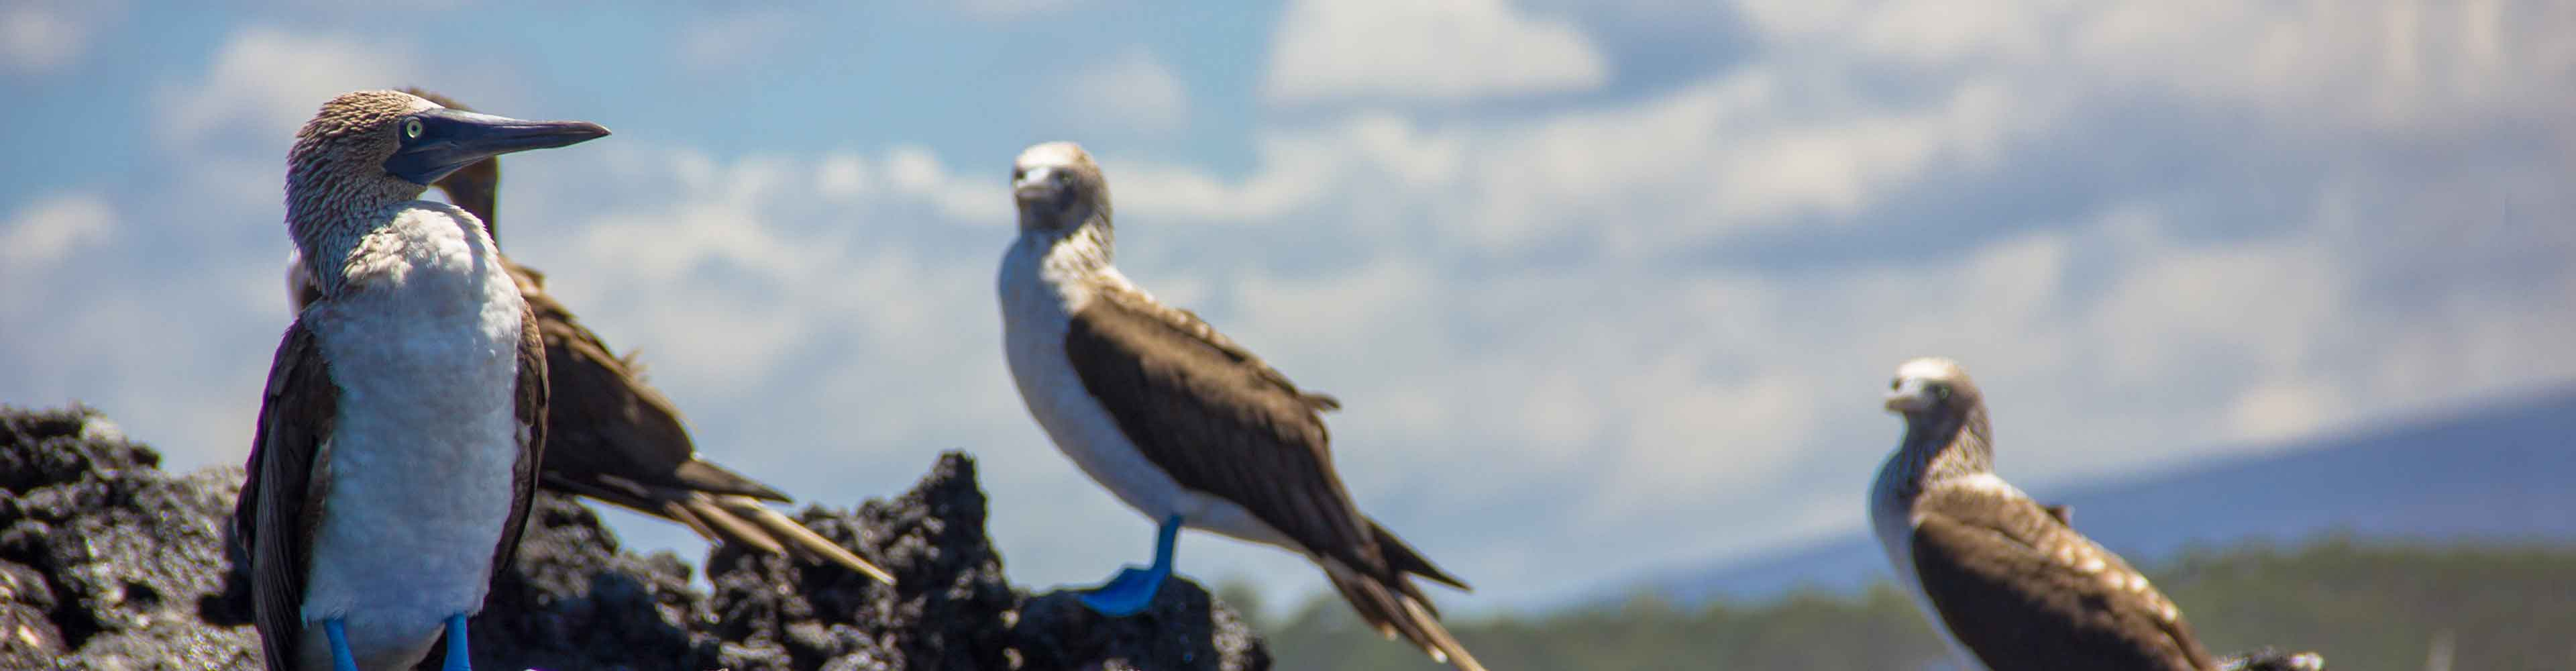 Galapagos Voyager – Central Islands (Grand Queen Beatriz)